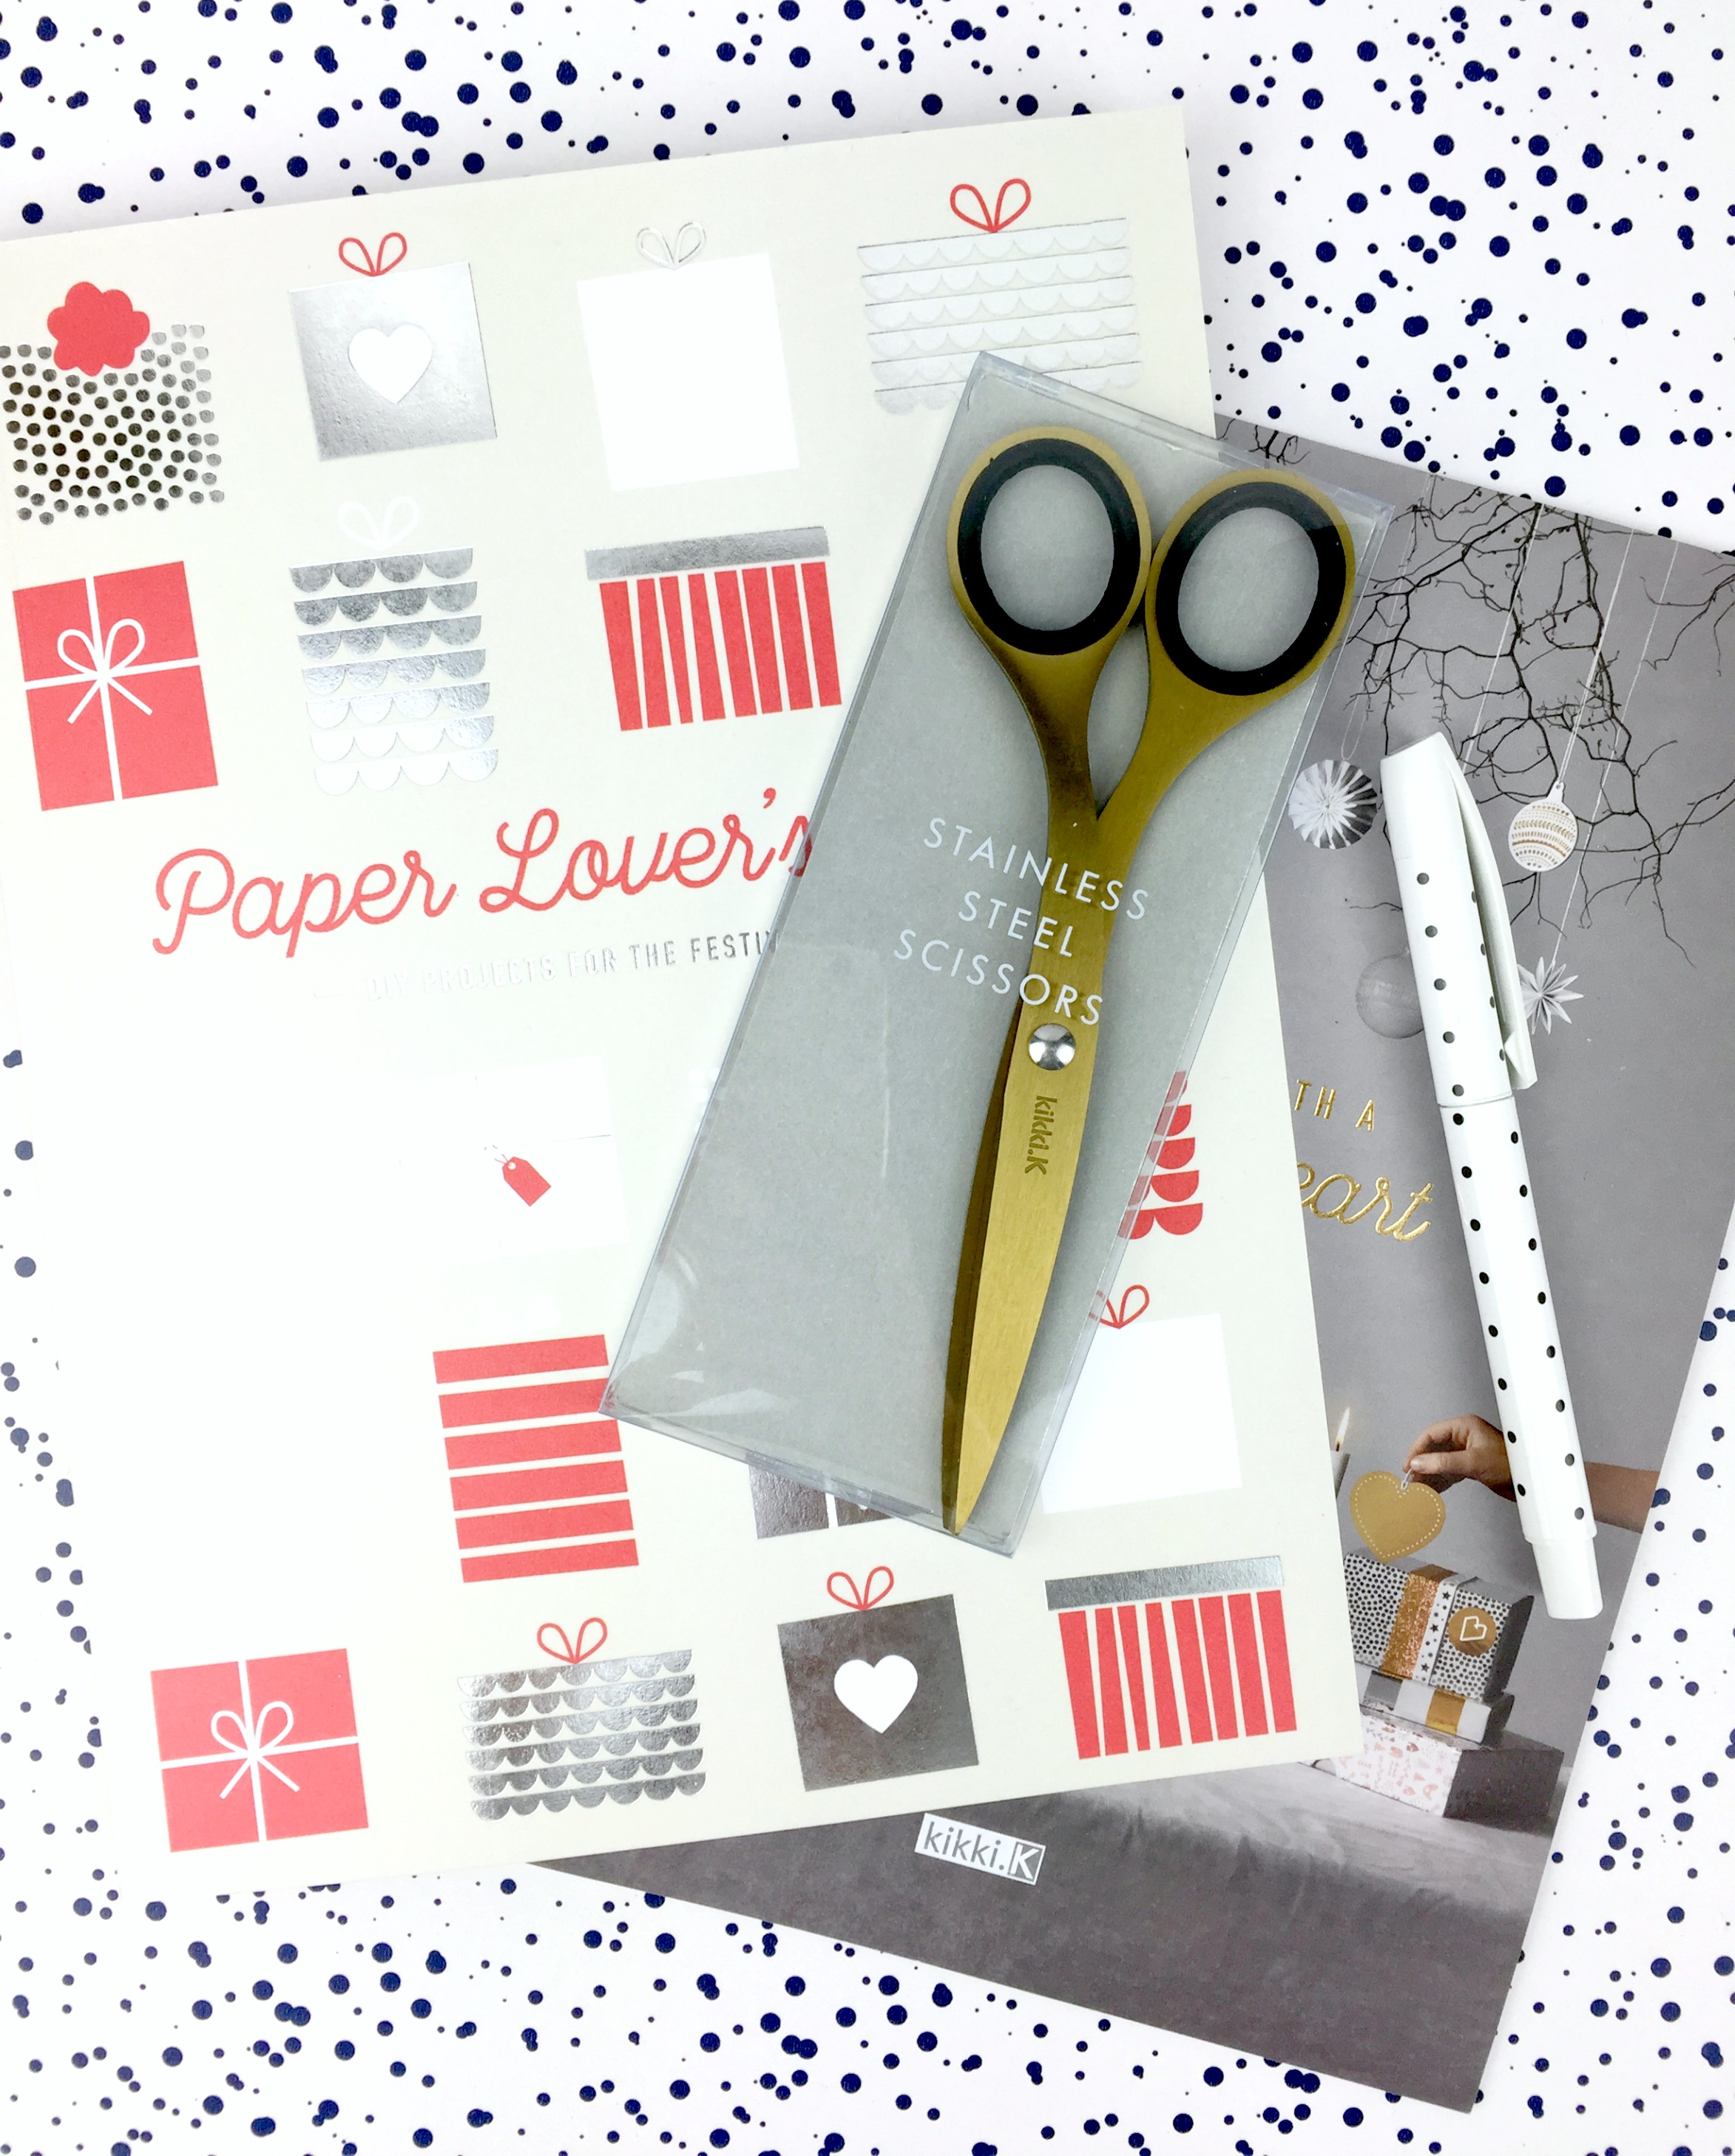 paper-lovers-book-kikkik-daphnerosa